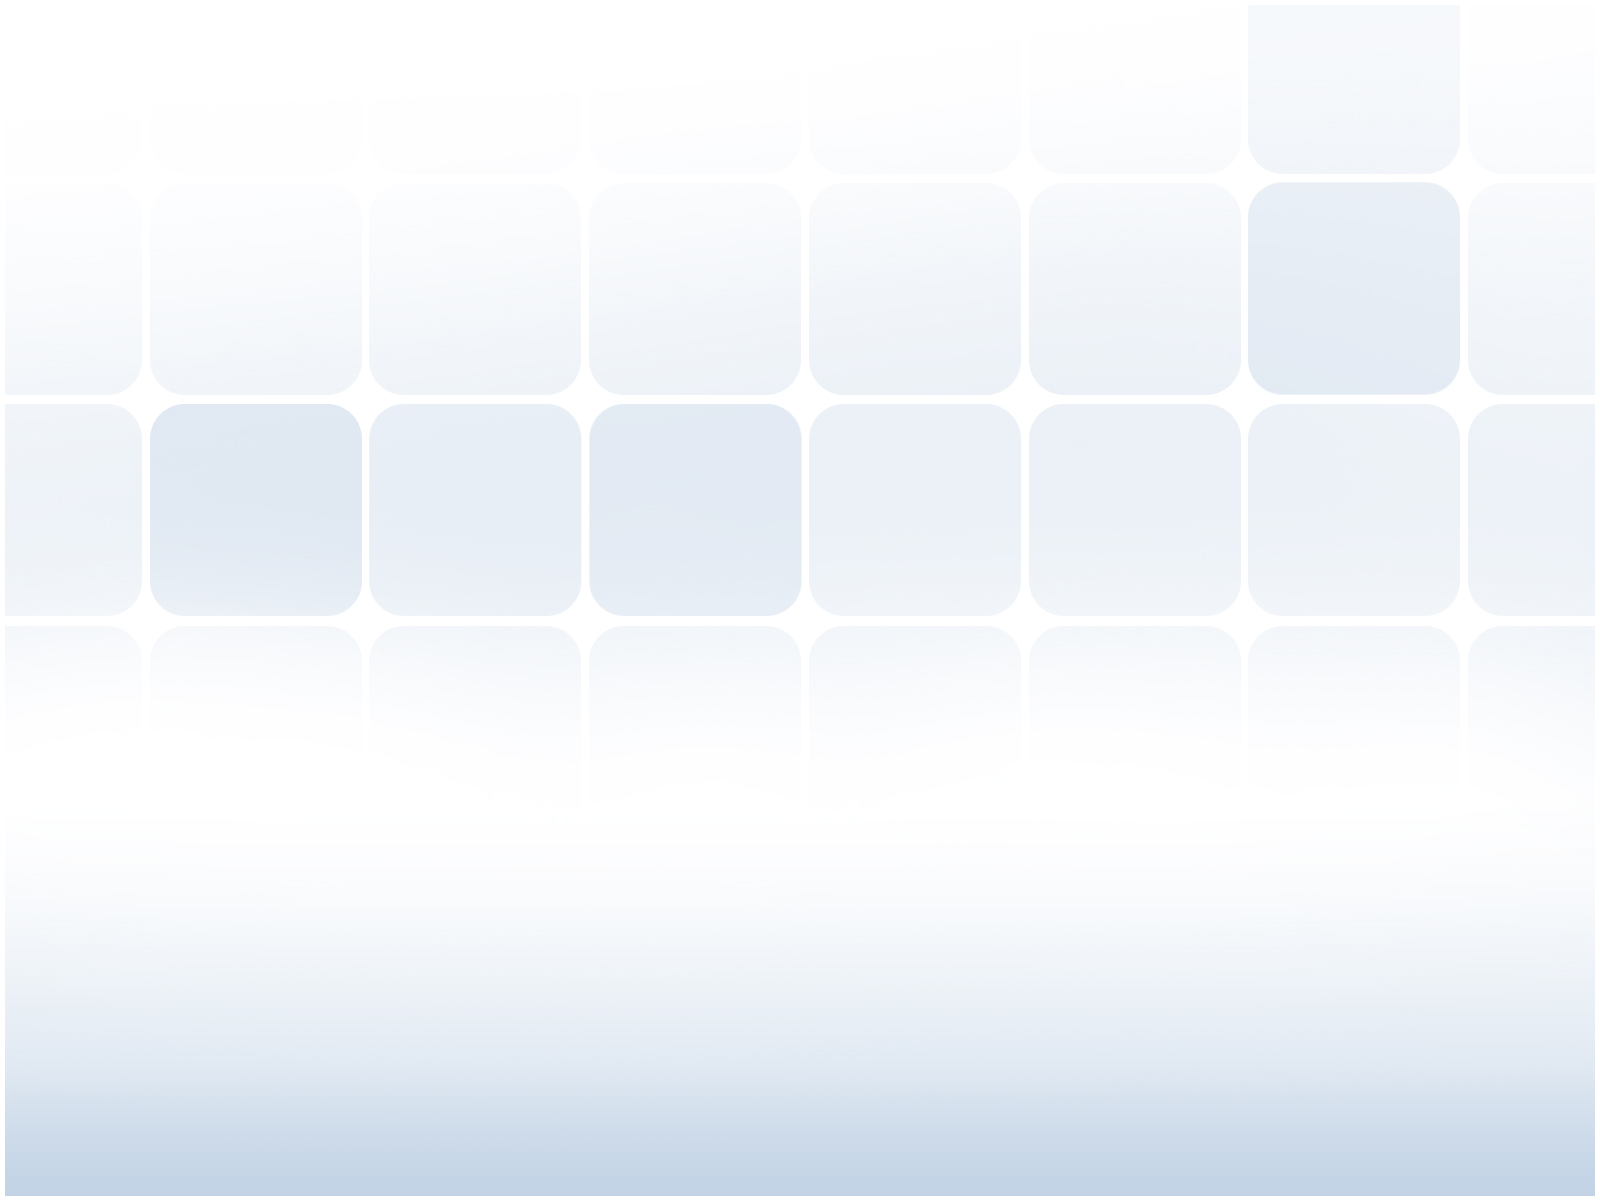 white square ppt background